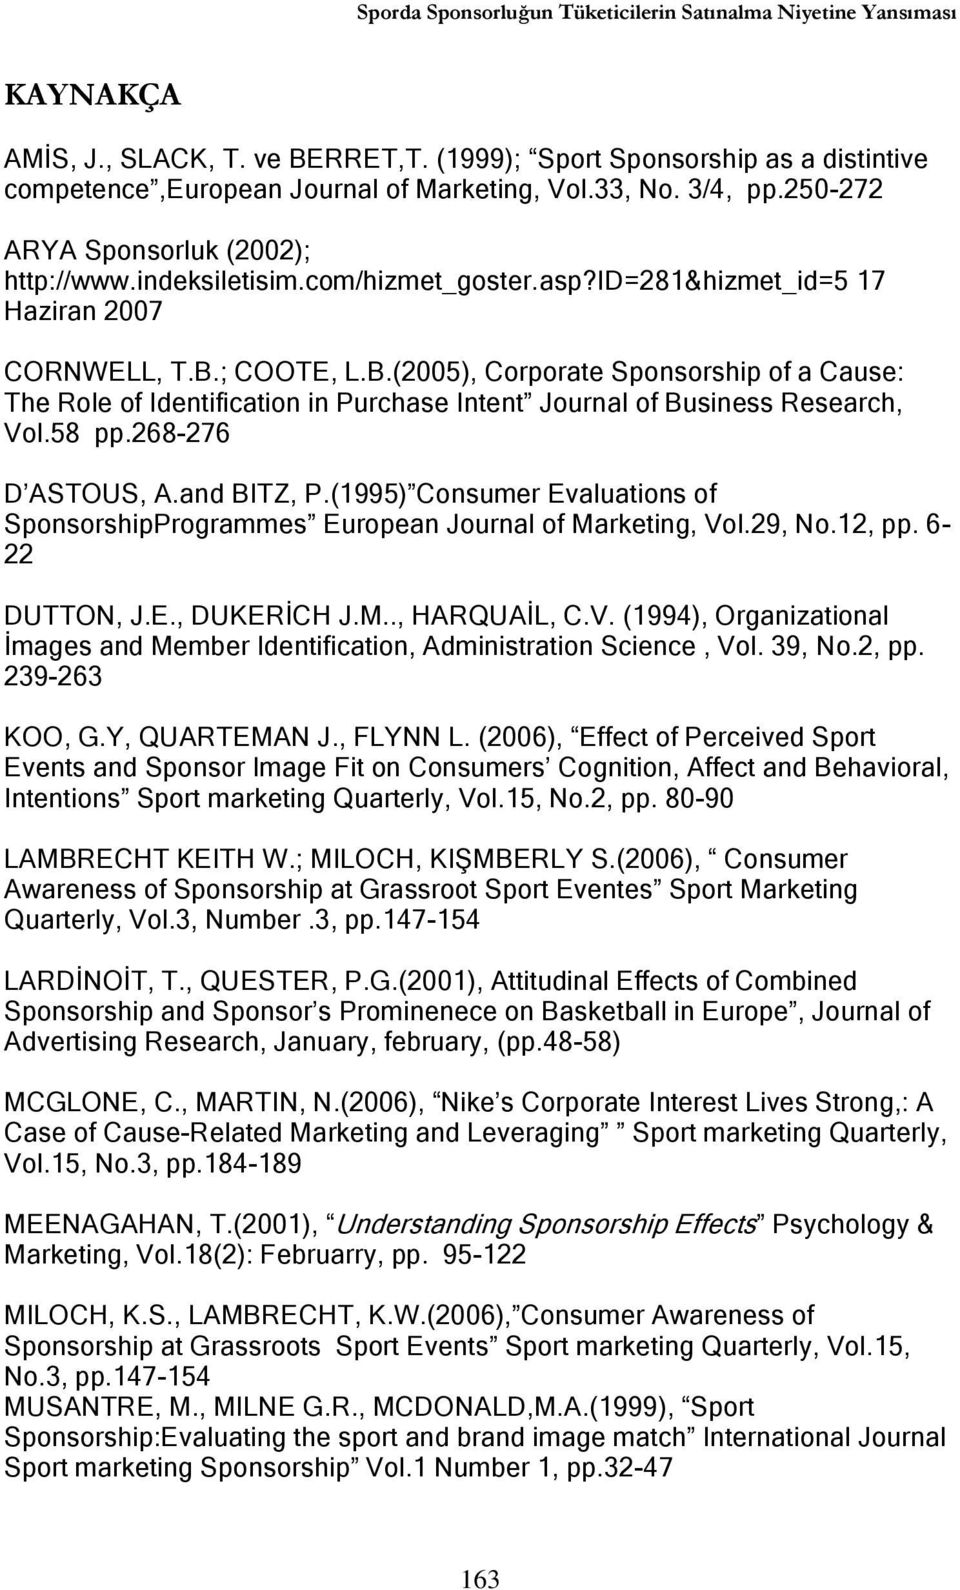 ; COOTE, L.B.(2005), Corporate Sponsorship of a Cause: The Role of Identification in Purchase Intent Journal of Business Research, Vol.58 pp.268-276 D ASTOUS, A.and BITZ, P.